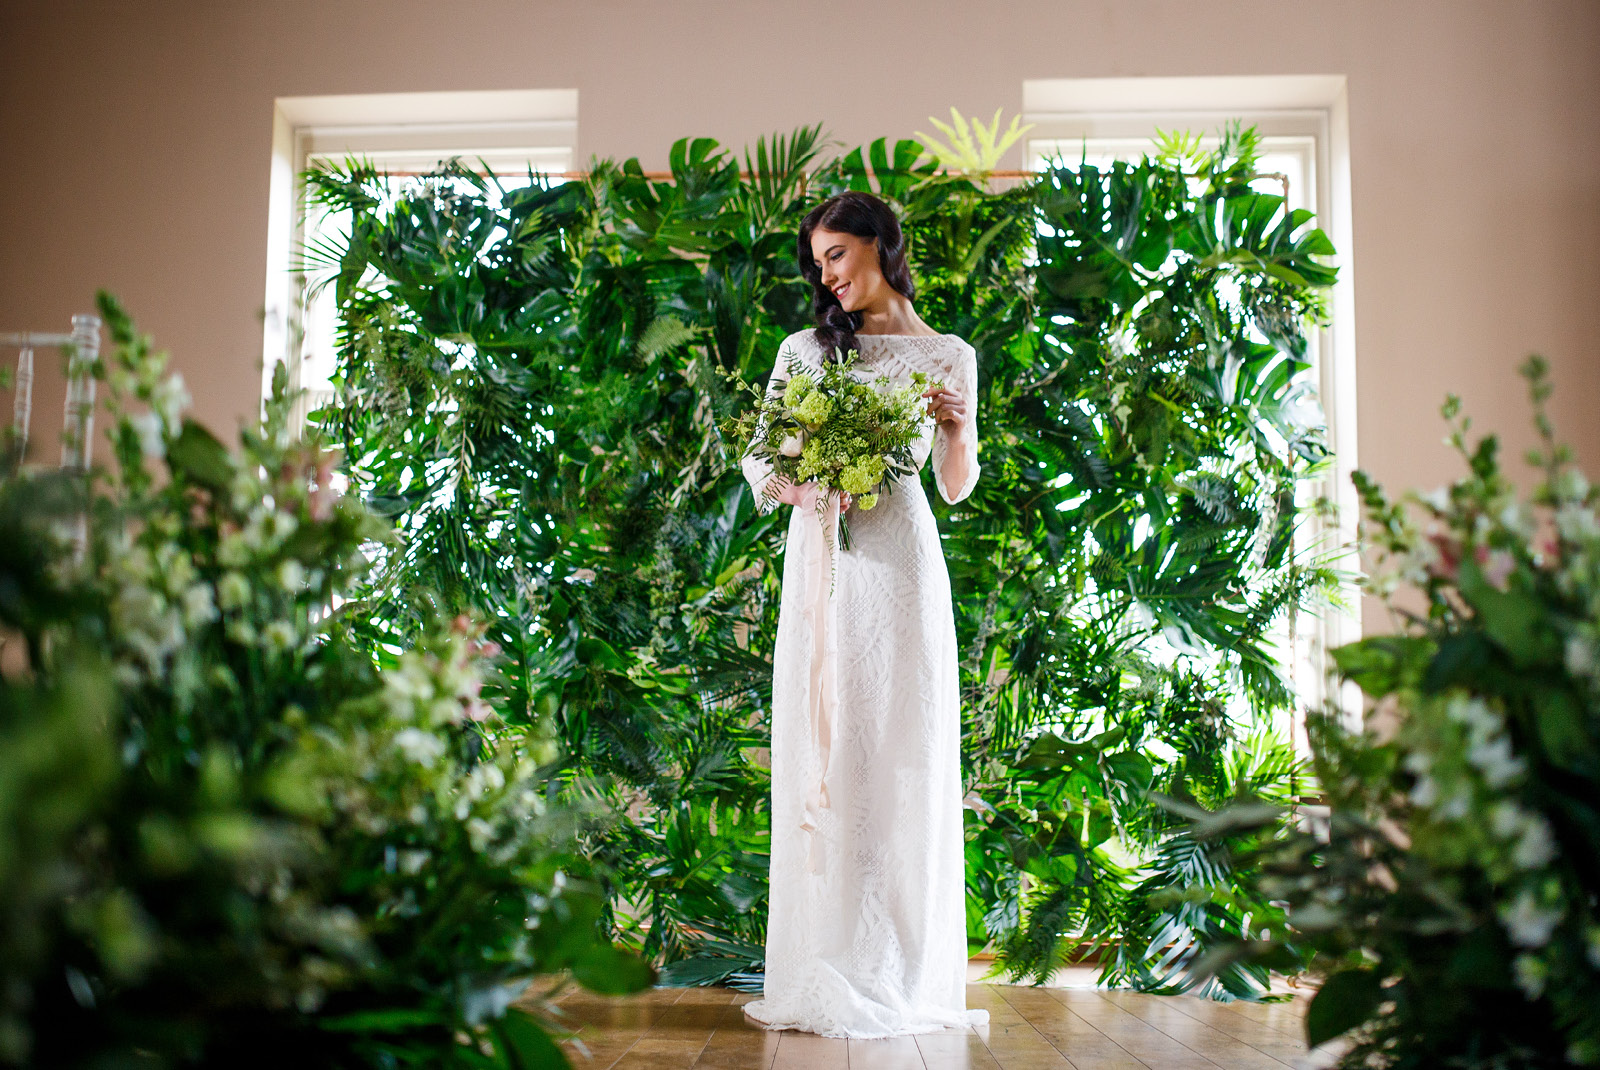 Bride standing in front of a greenery wall with a bouquet of flowers